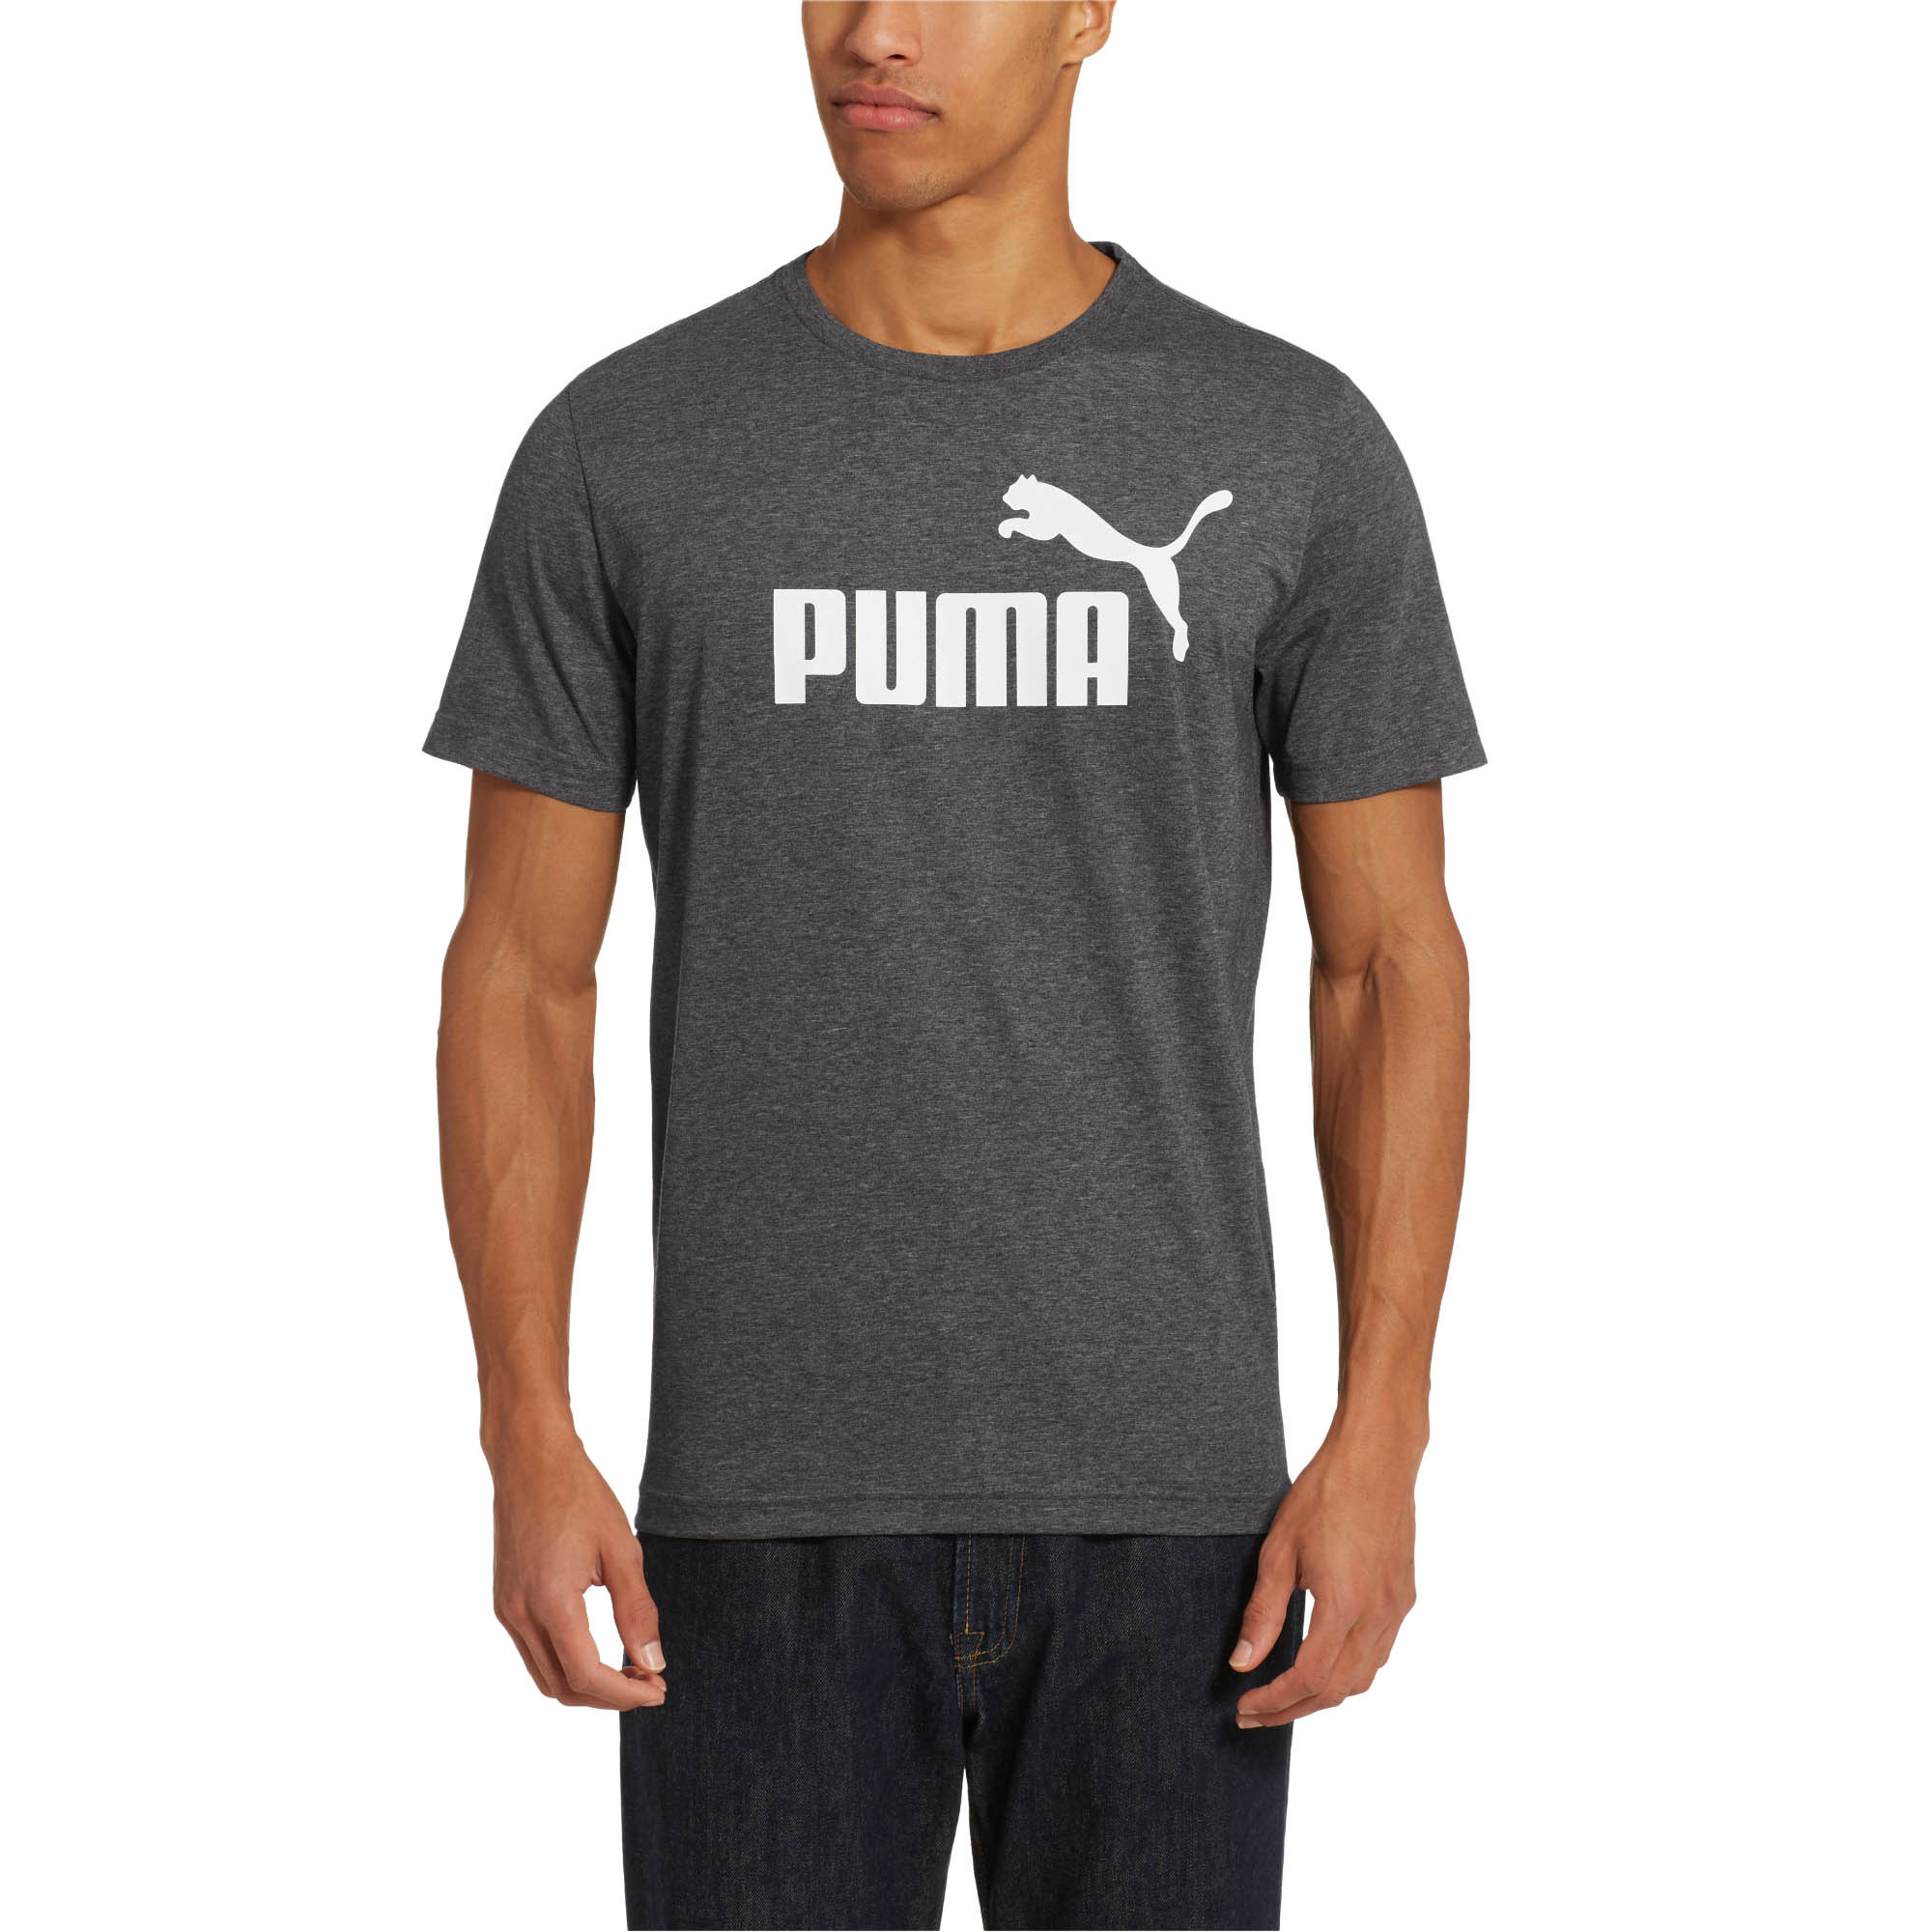 PUMA-Essentials-Heather-Tee-Men-Tee-Basics thumbnail 6